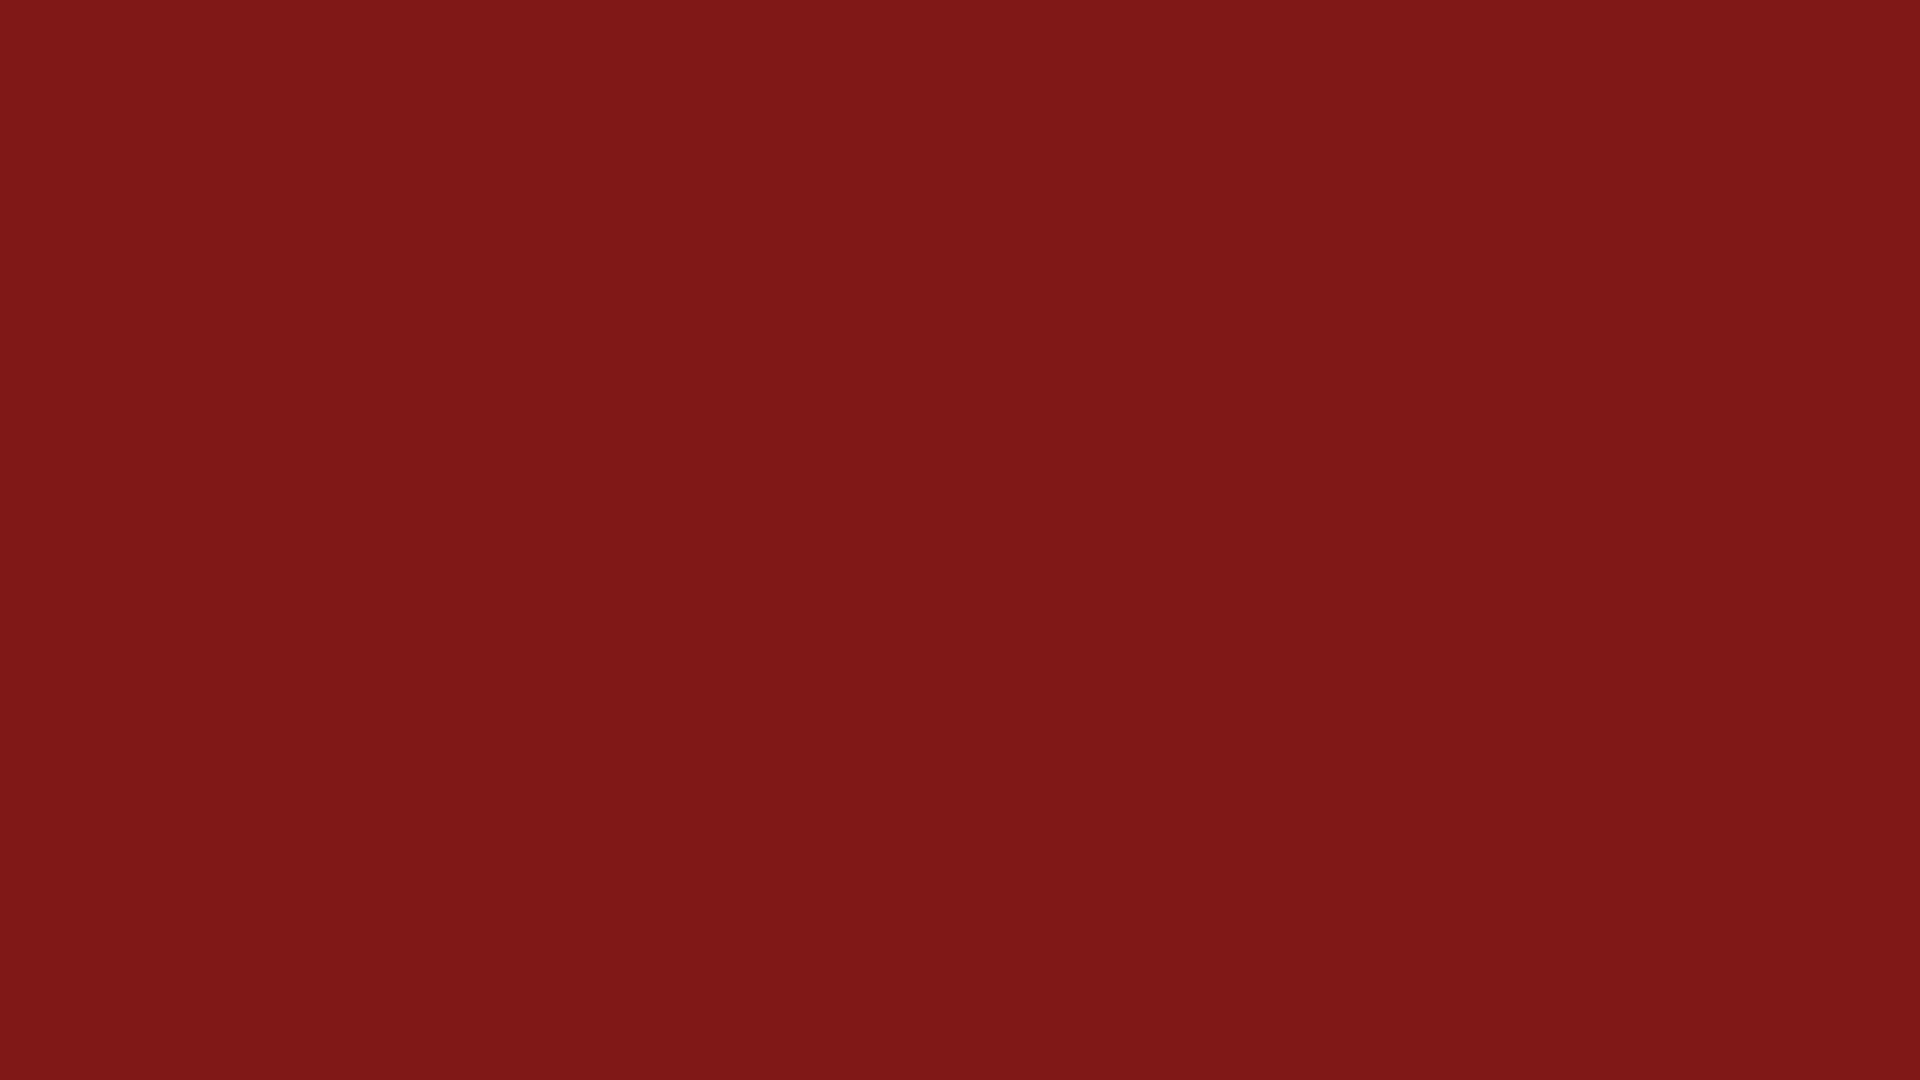 1920x1080 Falu Red Solid Color Background